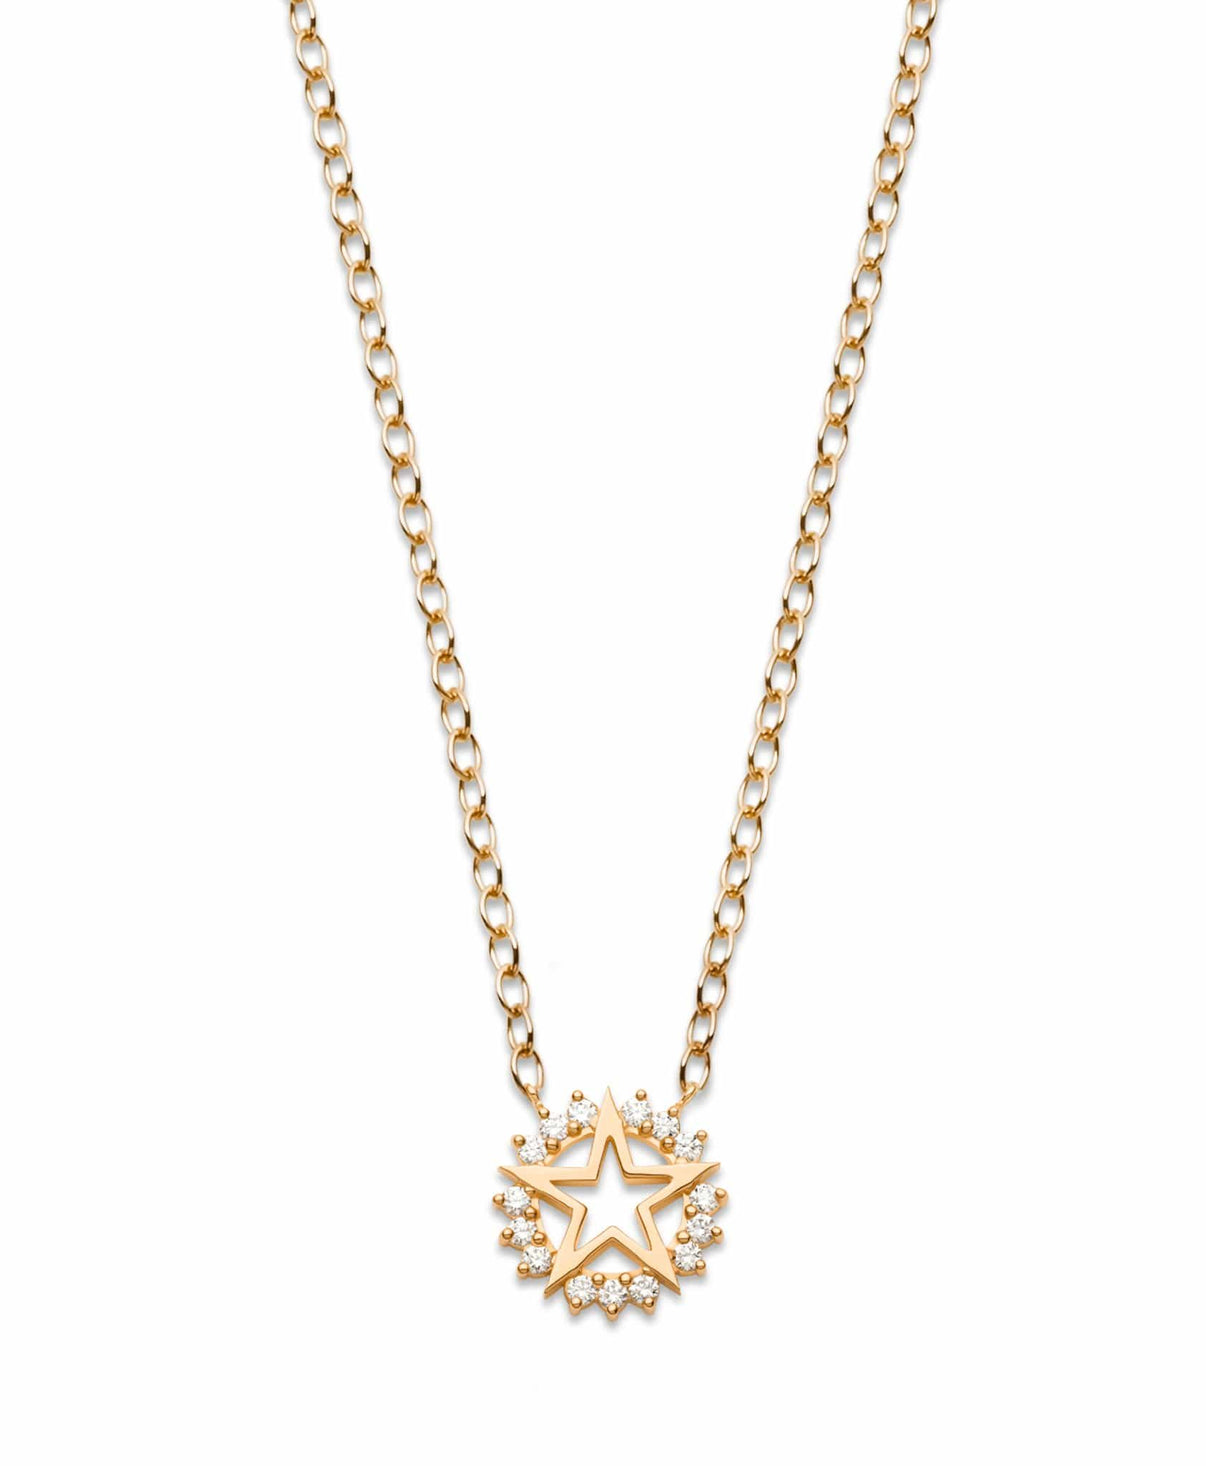 Medium Star Pendant: Discover Luxury Fine Jewelry | Nouvel Heritage || Yellow Gold